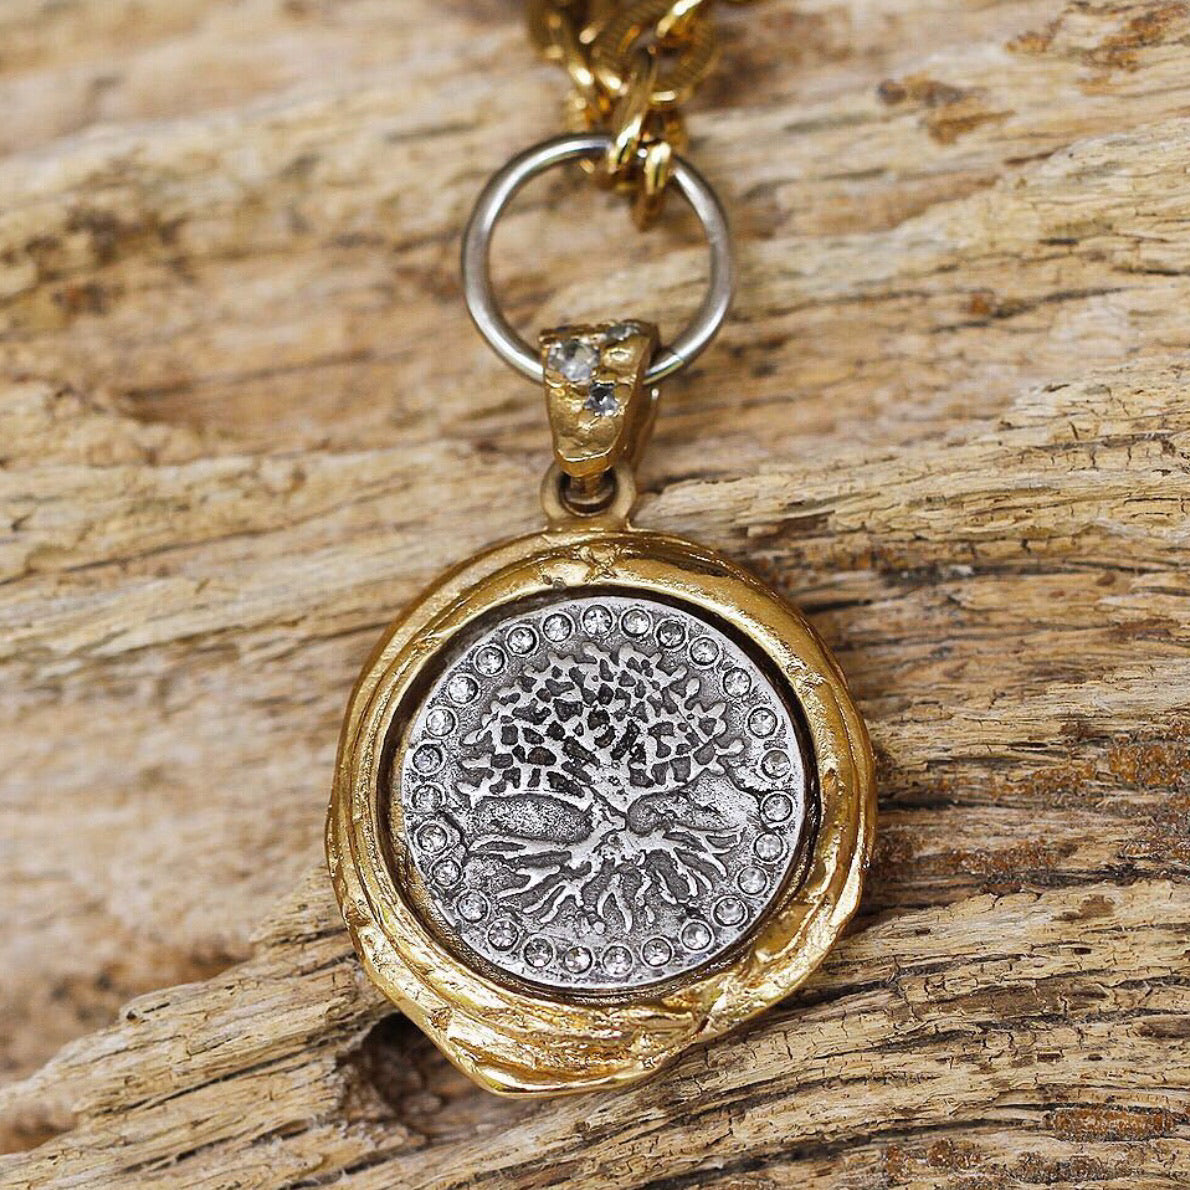 GOLD GUNA WAX SEAL NECKLACE